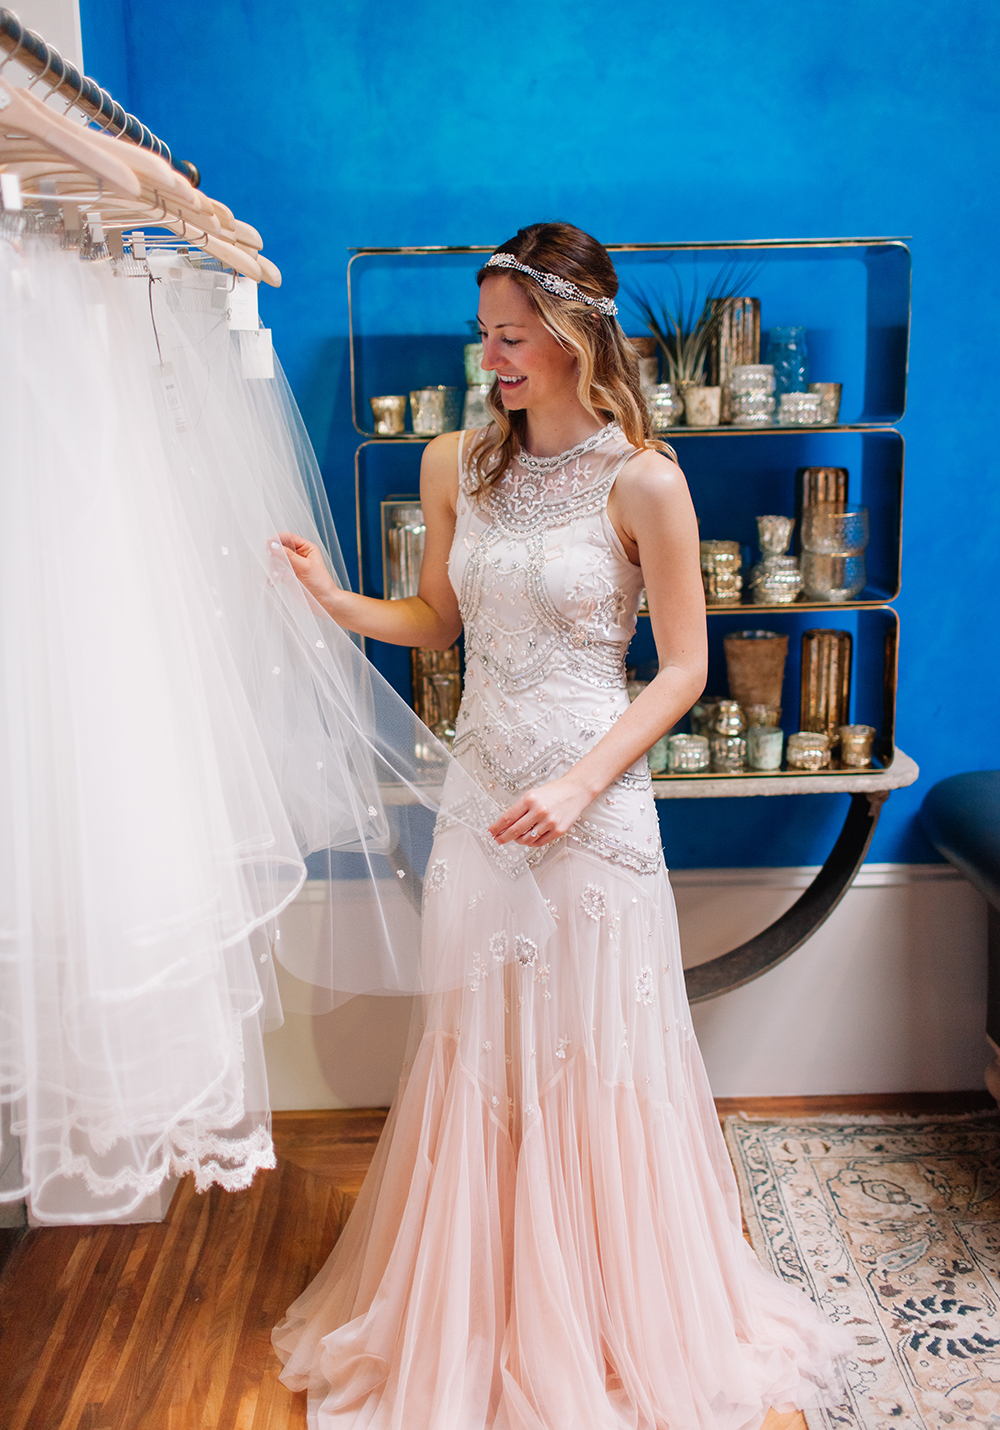 Merveilleux ... Livvyland Blog Bhldn Store Front Houston Texas Bridal  ...